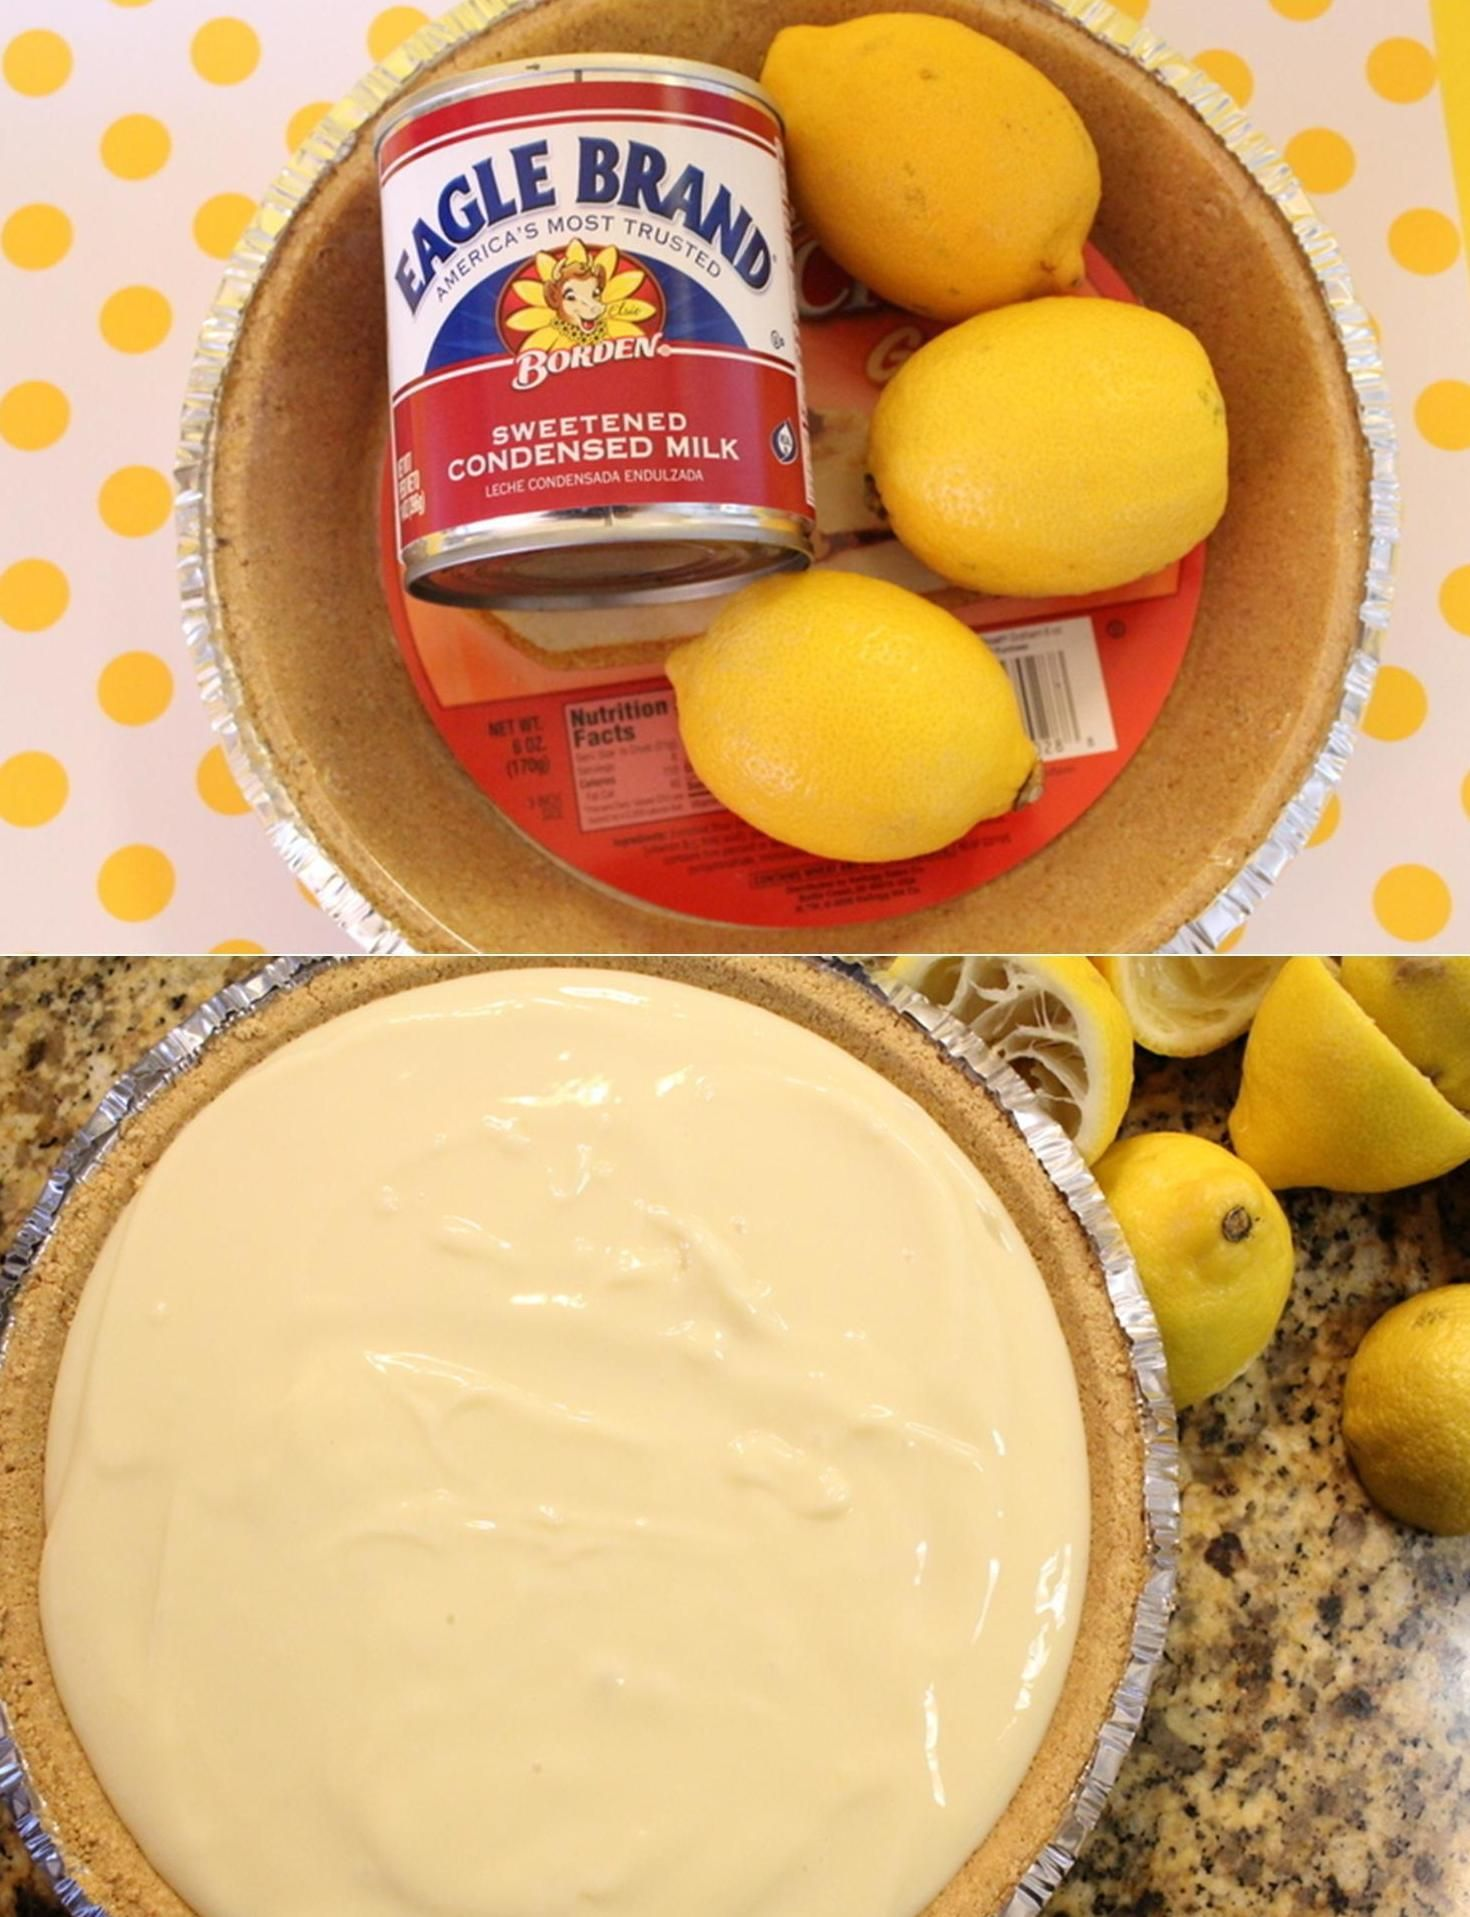 Bake Lemon Pie - 3 ingredients and it actually works :)                     Pie Crust, 2 cups sweetened condensed milk, 3/4 cup of lemon juice. Mix the Juice with the Milk then pour it into the Crust... then chill in the Fridge for a couple hours. Top with whipped cream :)